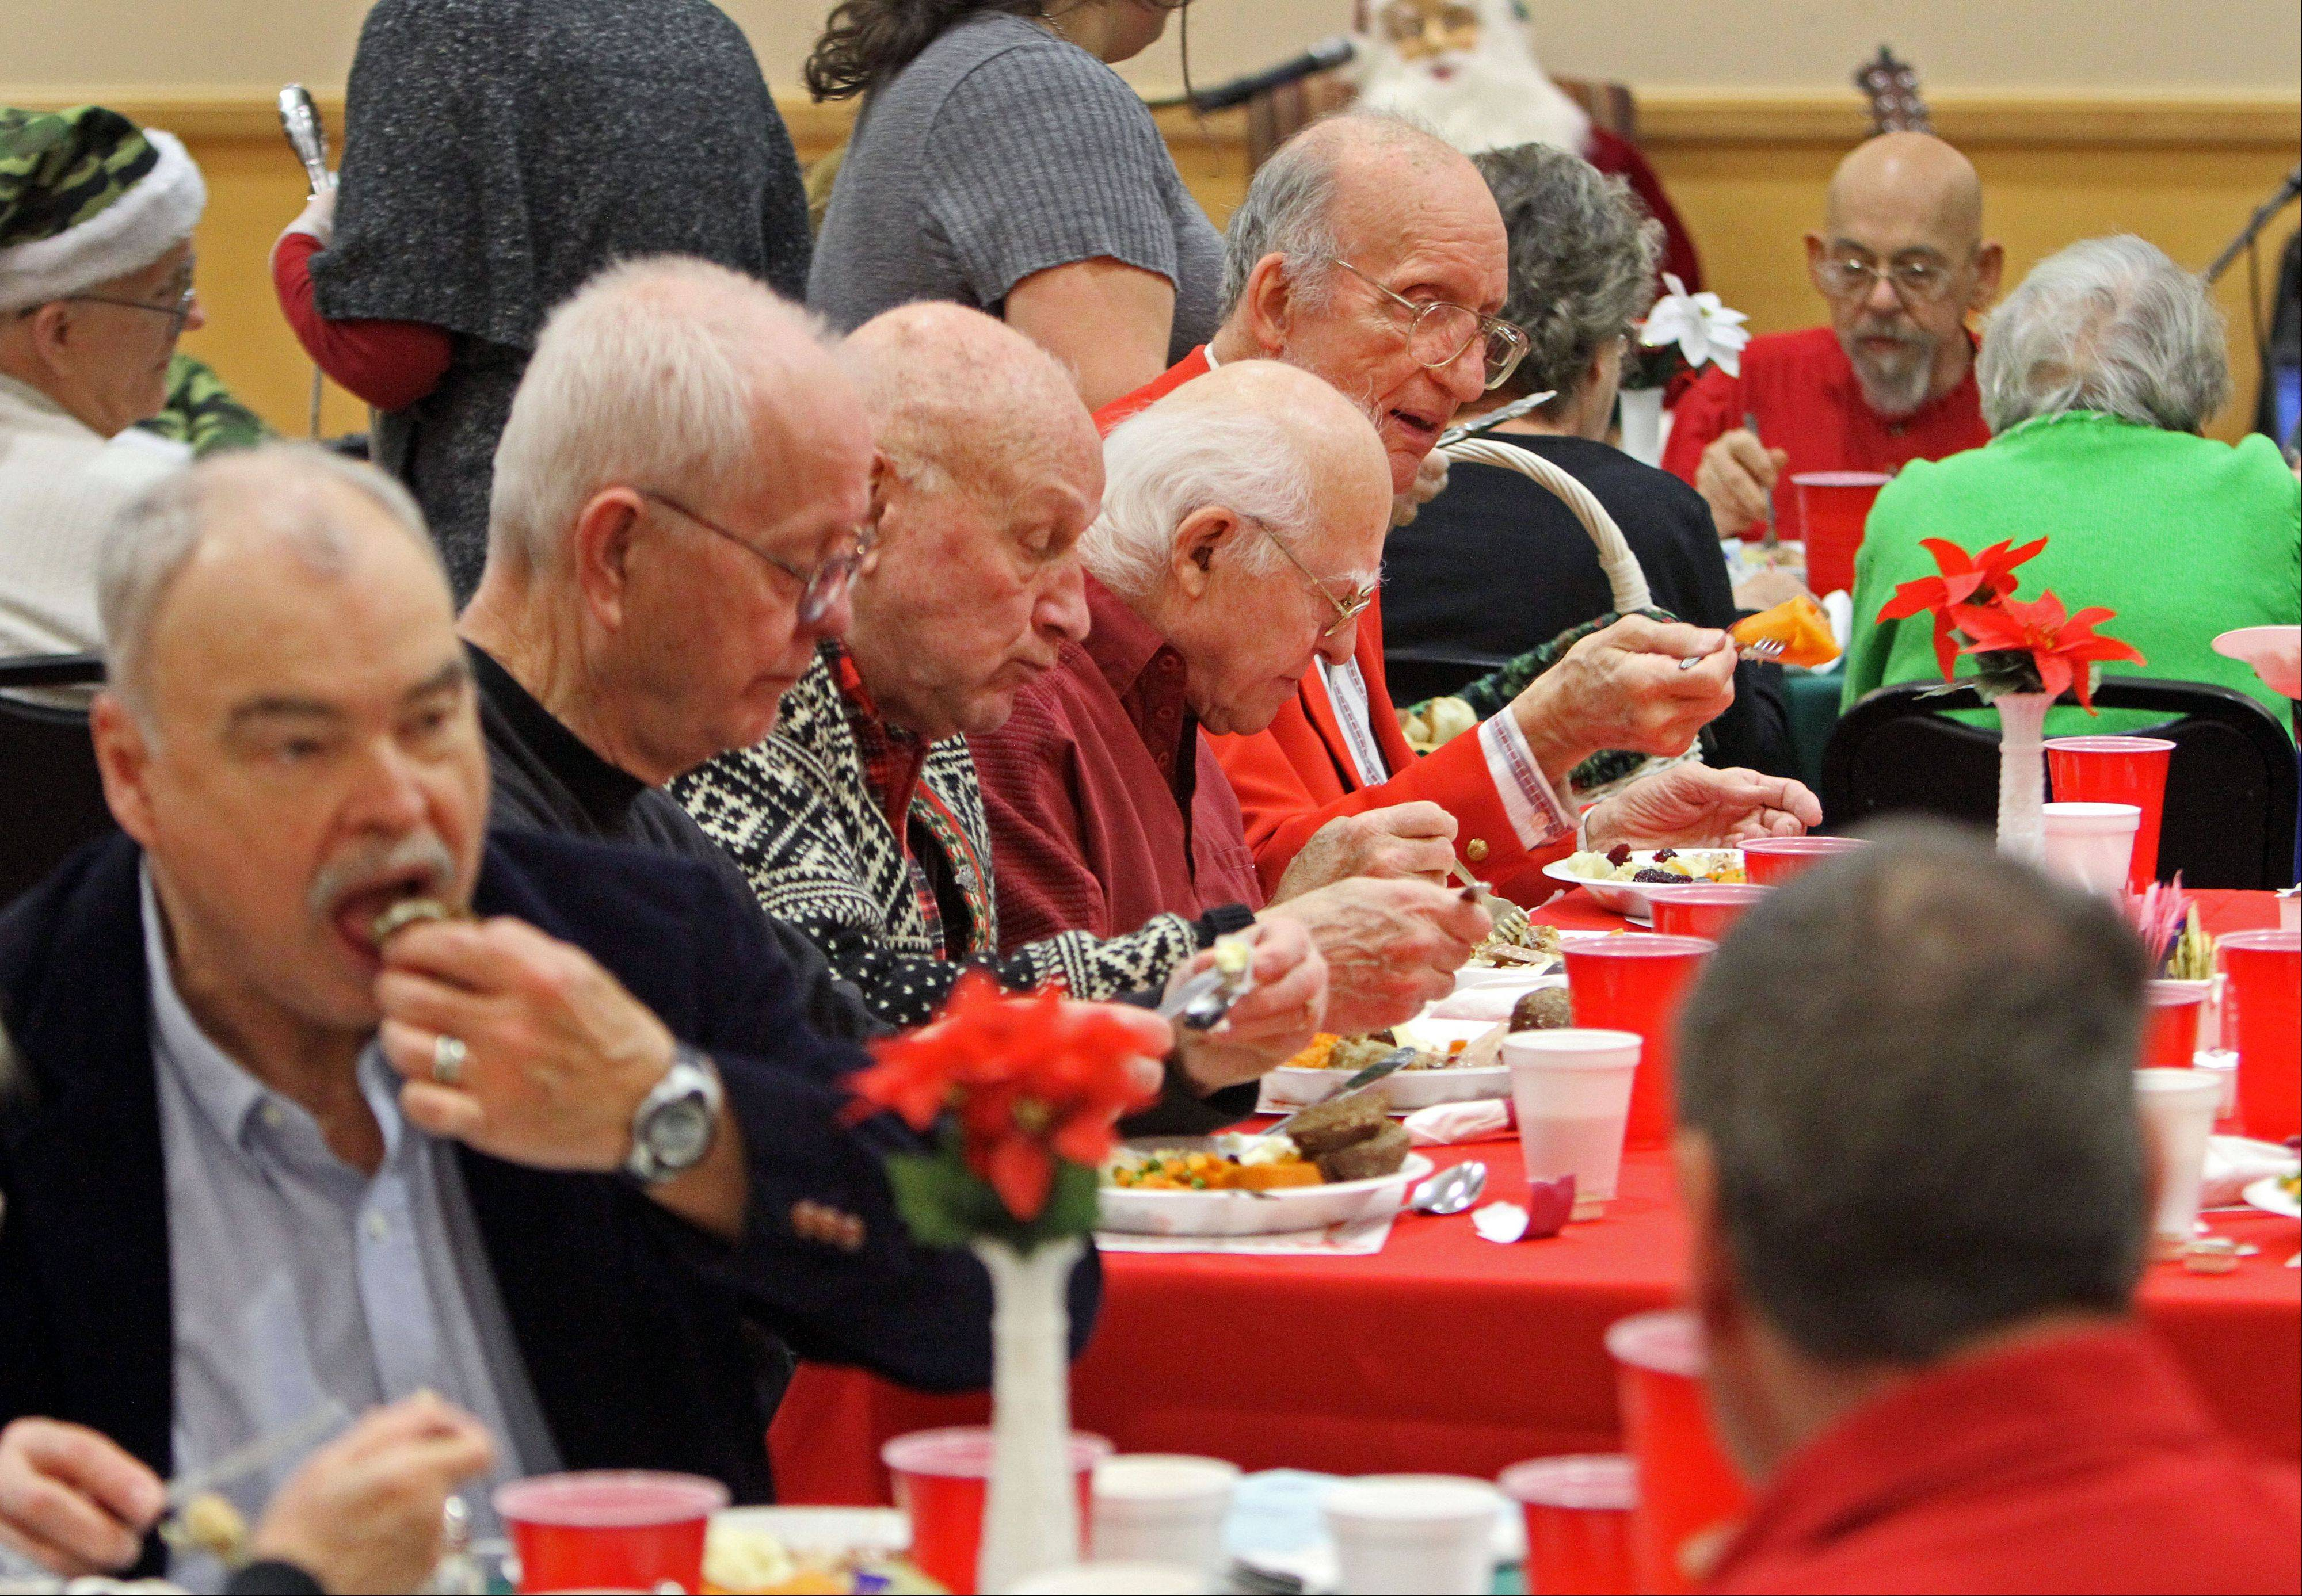 About 100 seniors were treated to Christmas dinner at the Frisbie Senior Center in Des Plaines Wednesday.